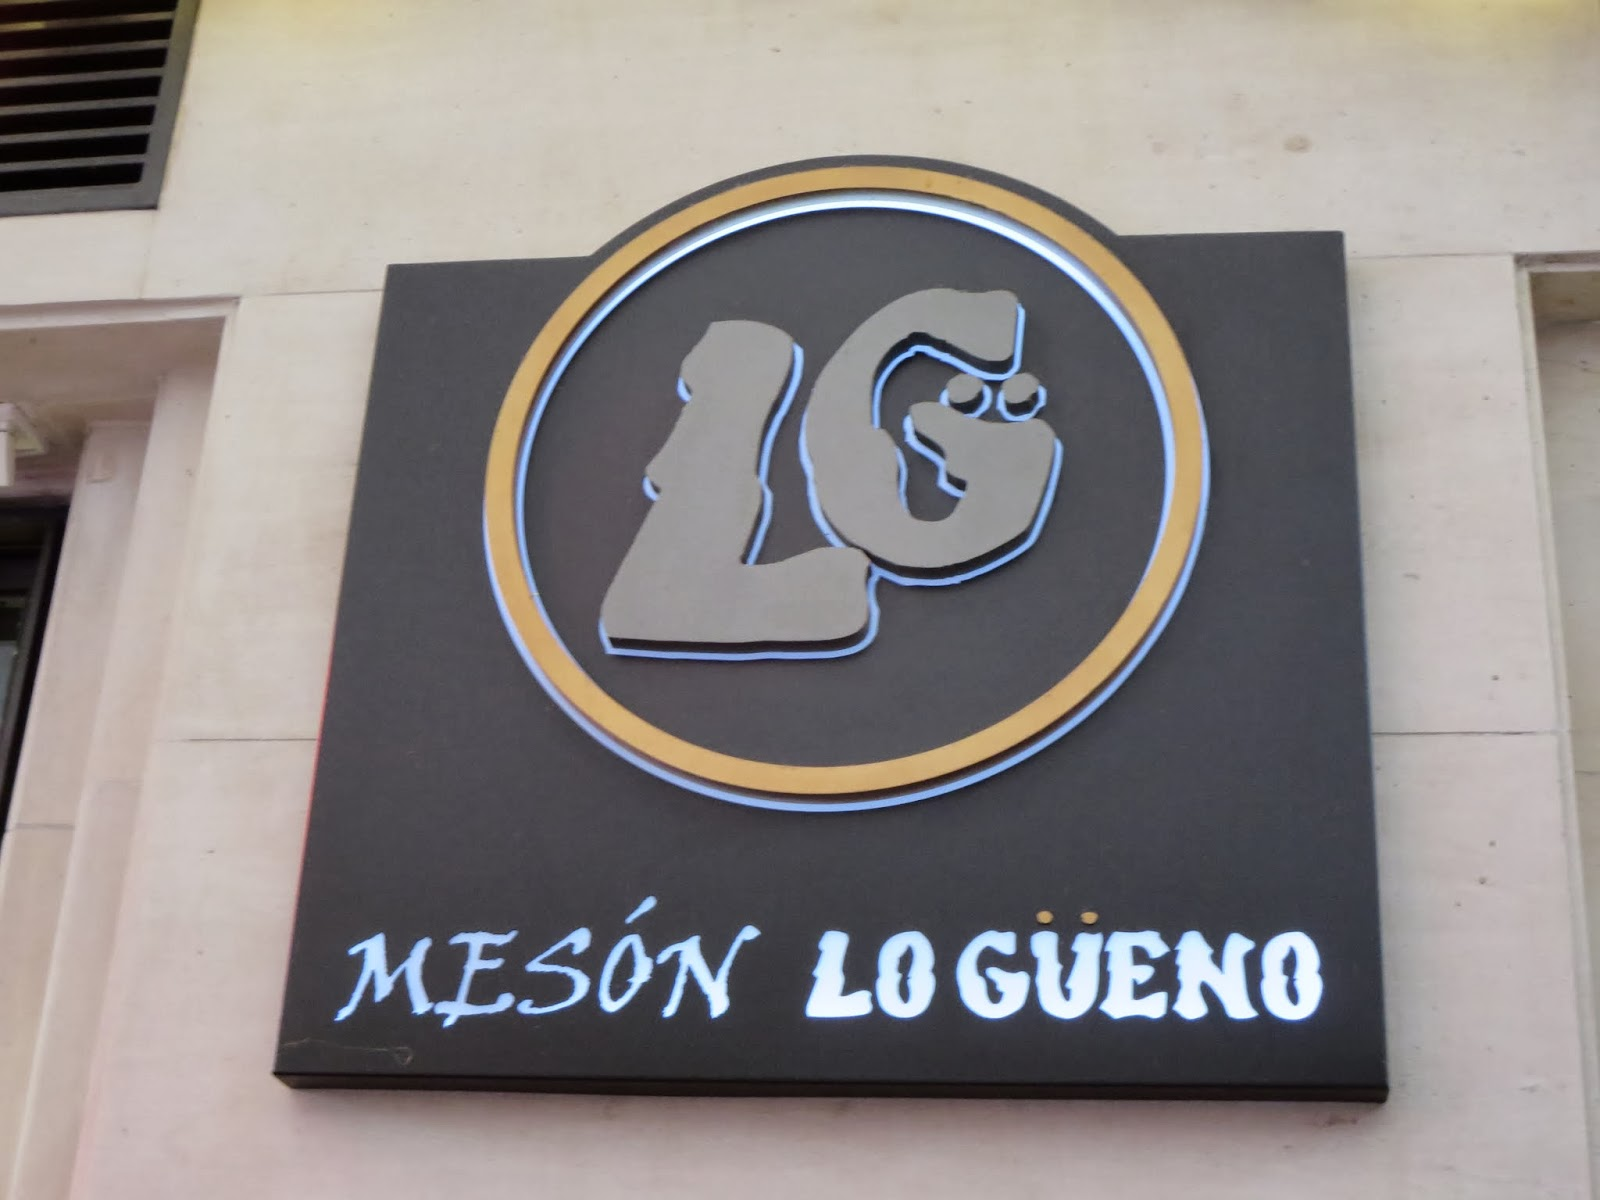 Malaga Restaurants: Meson Lo Gueno in Málaga, Spain